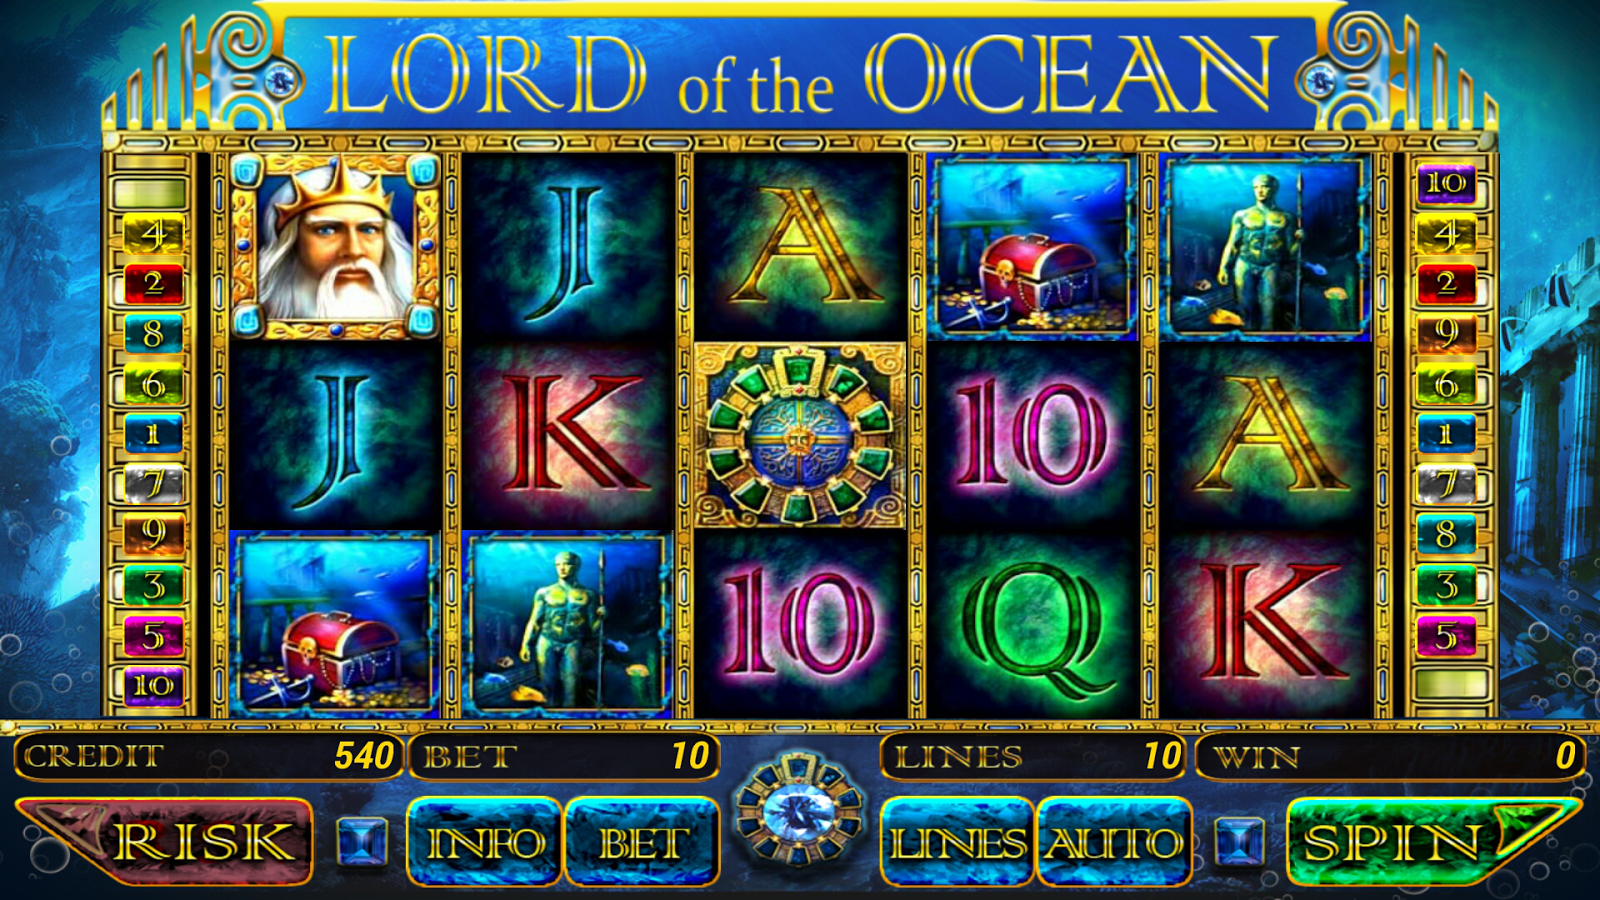 Lord of the ocean free slot machine